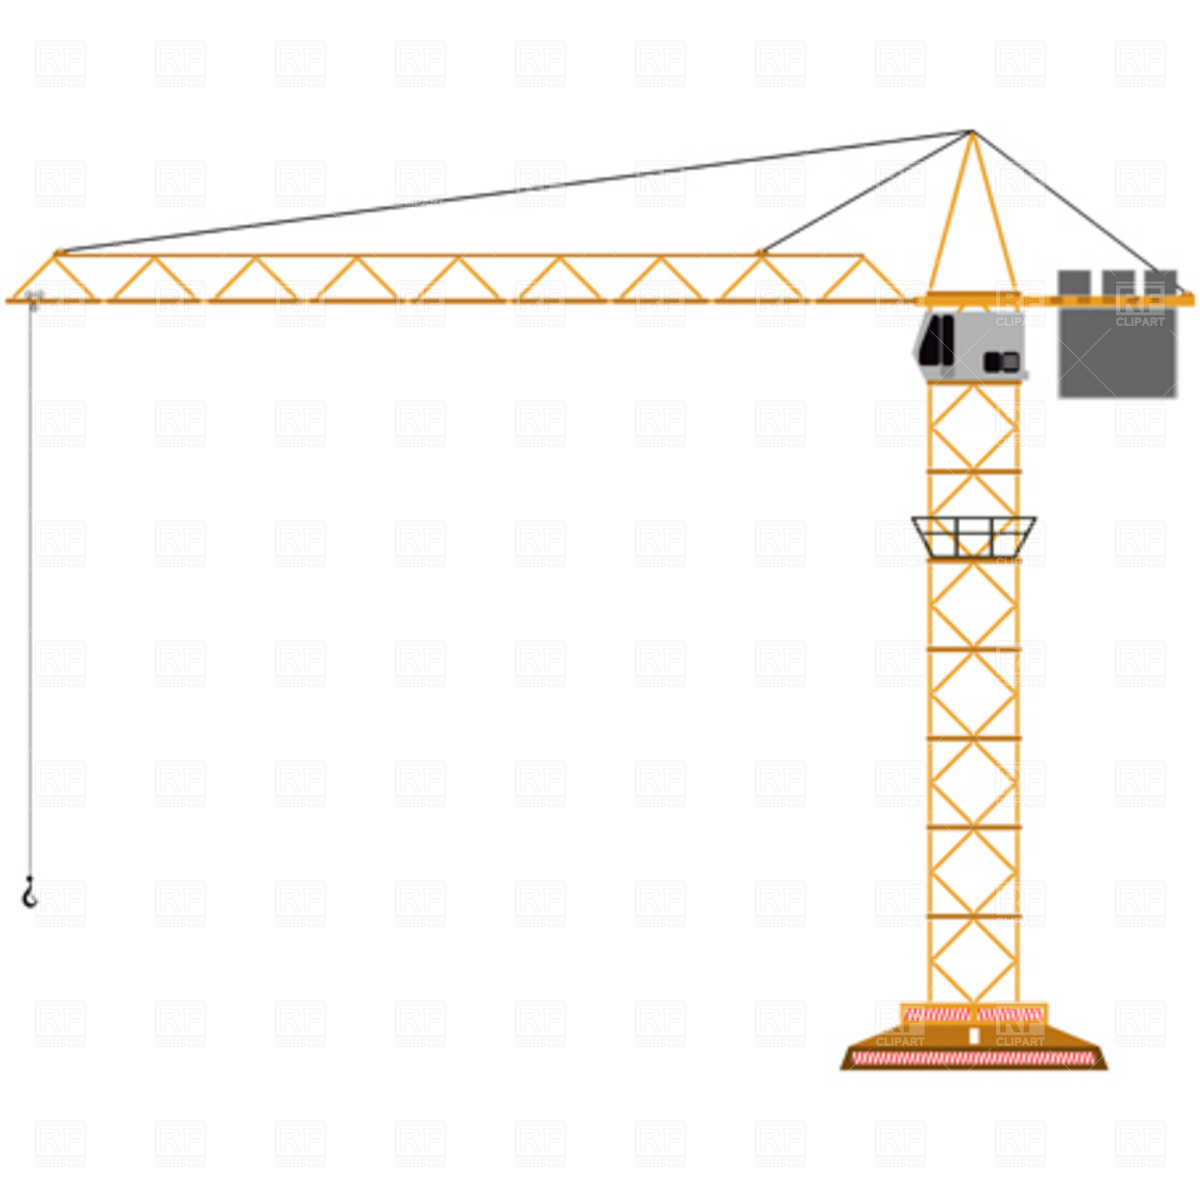 Tower crane Vector Image #3223.